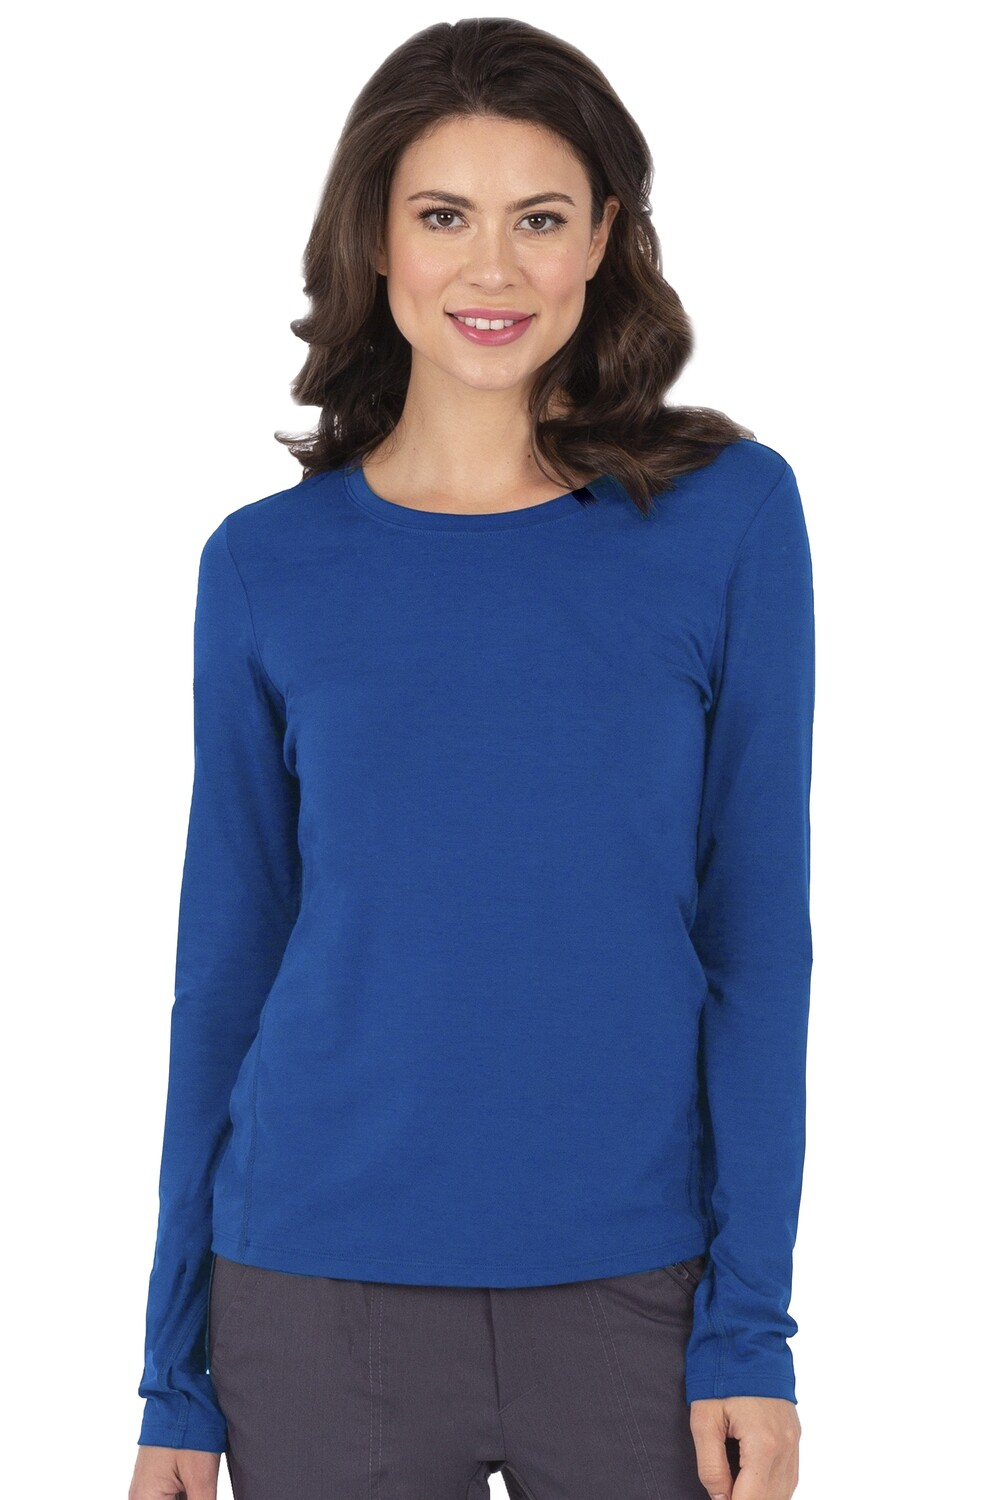 5051 MACKENZIE TEE 3XL ROYAL BLUE